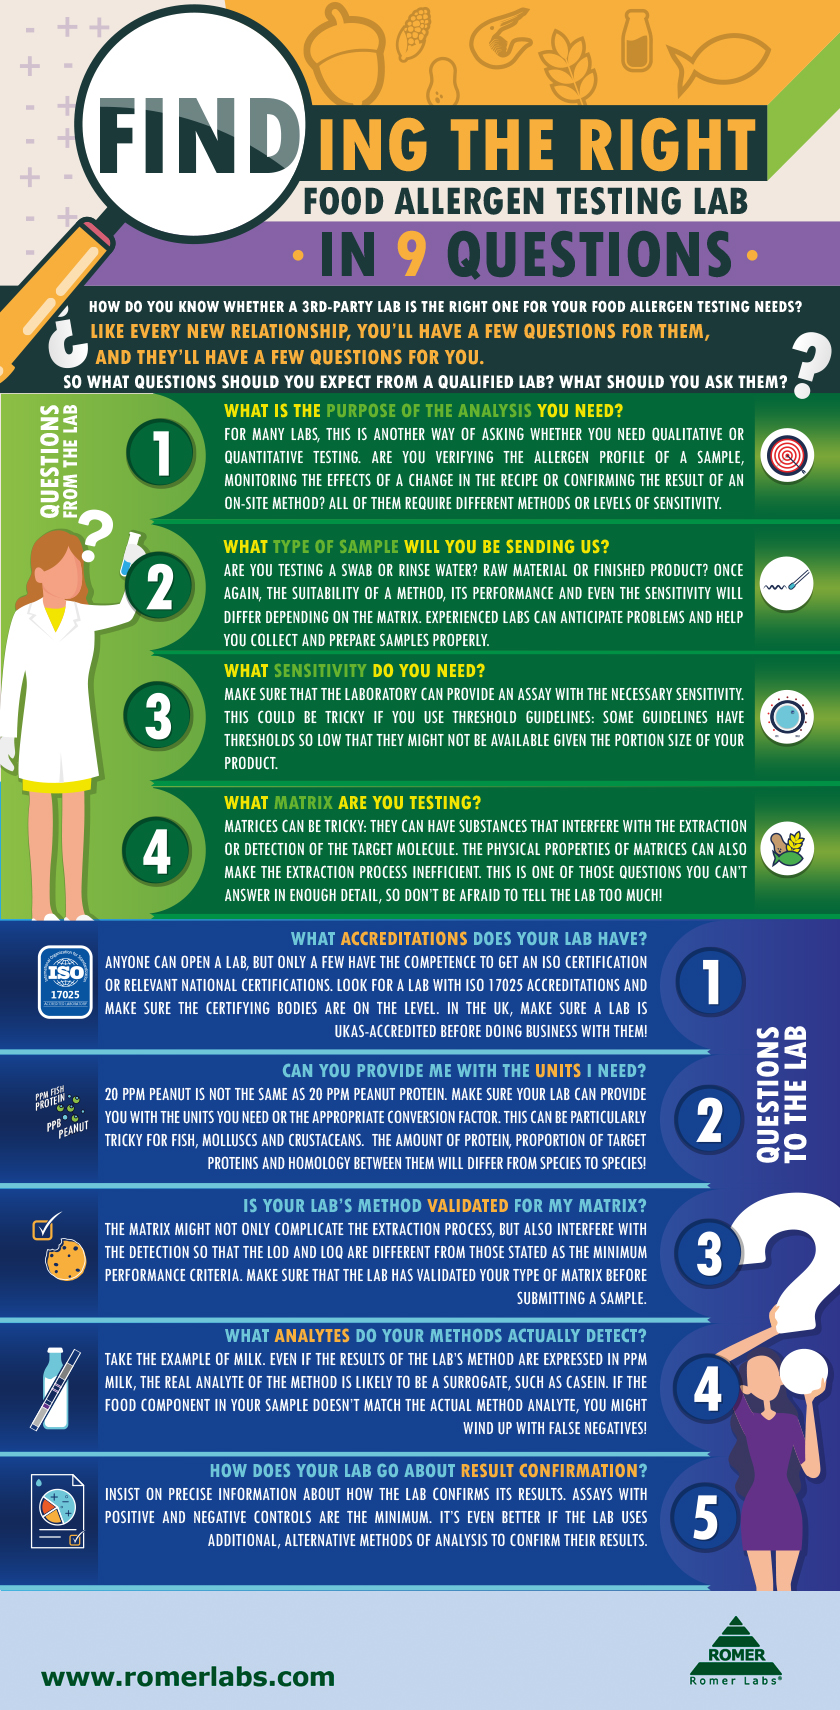 [Infographic] Finding the Right Food Allergen Testing Lab in 9 Questions